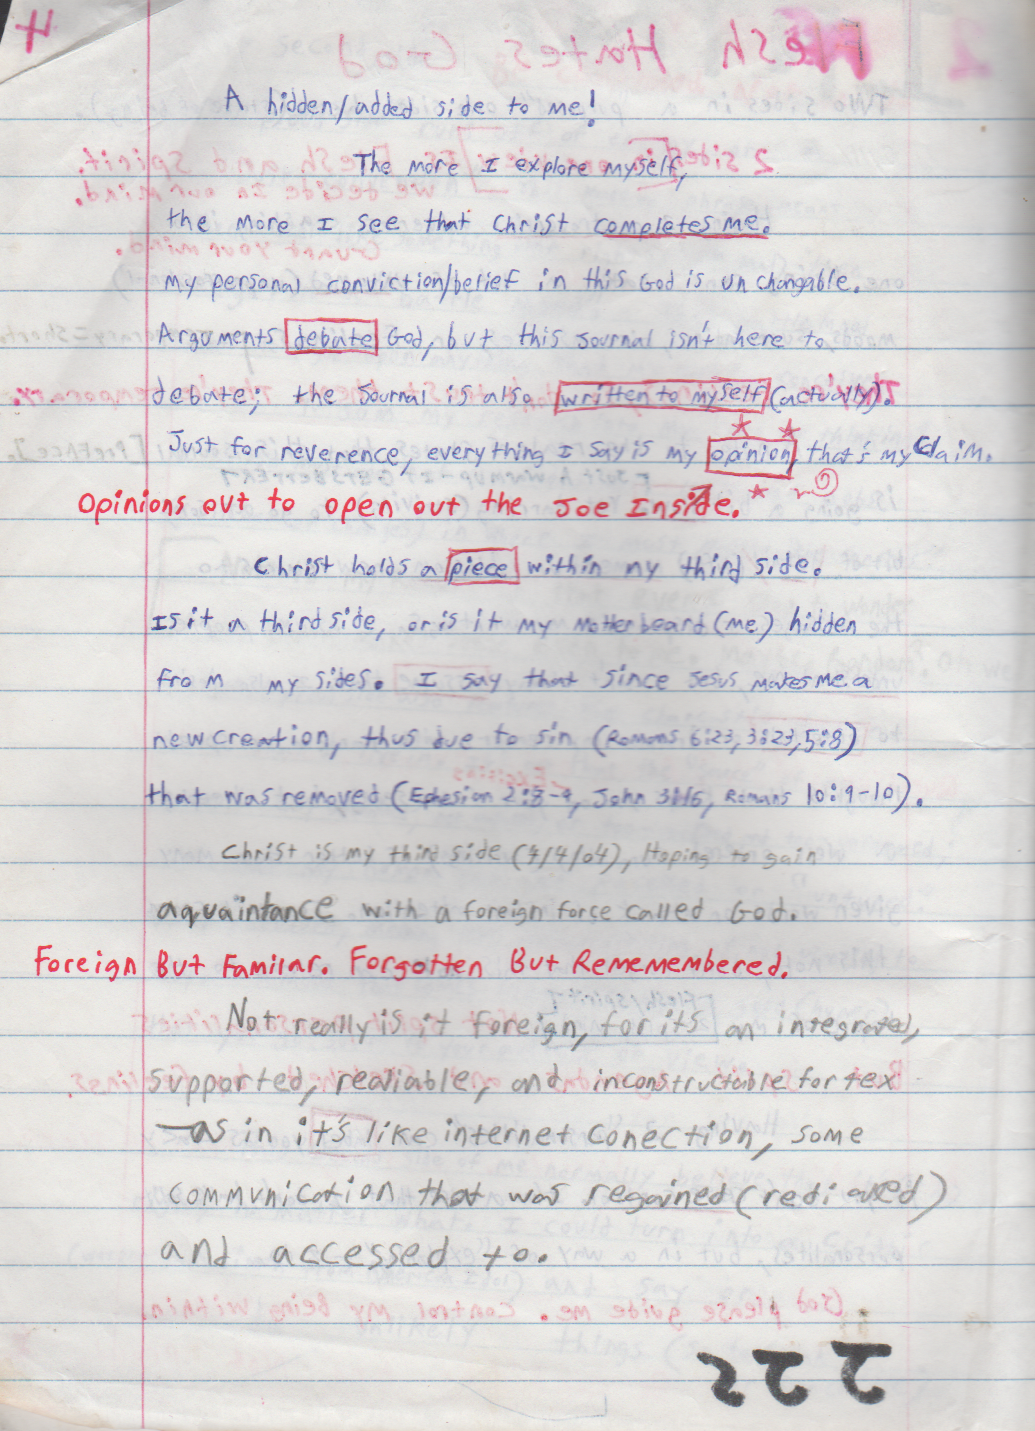 2004-02-11 - Wednesday - Joey Journal - Transition from high school to college that fall, intro pages-4.png